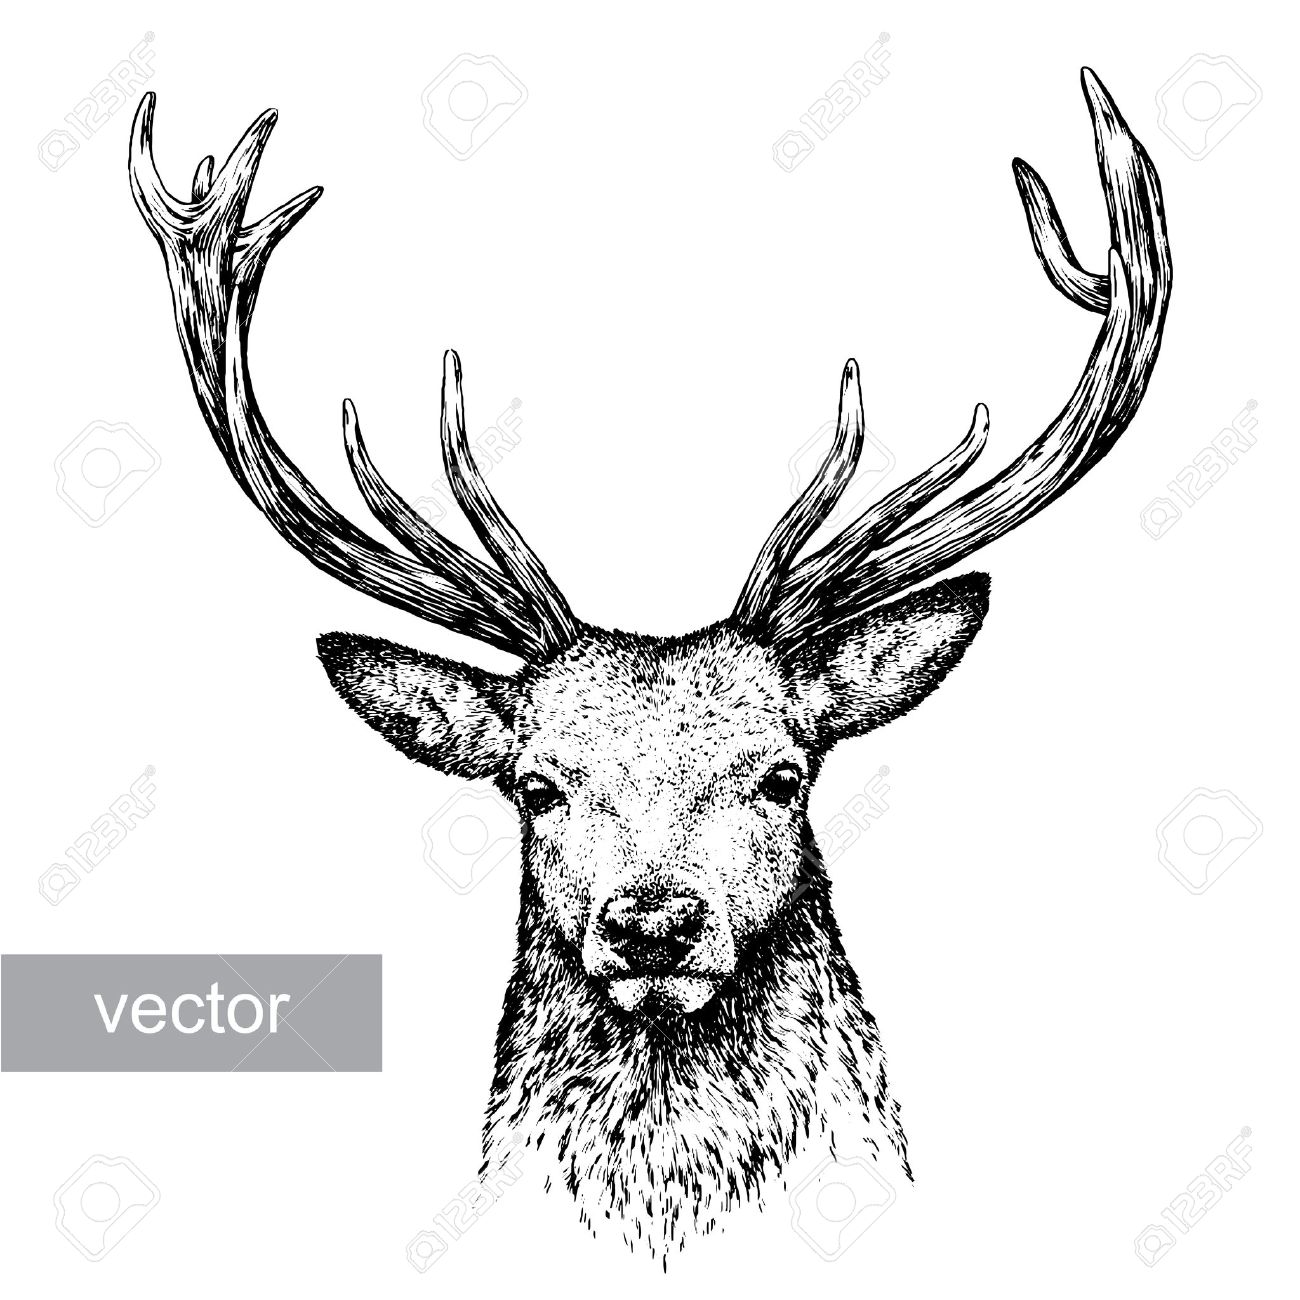 Engrave isolated deer vector illustration sketch linear art stock vector 46498388